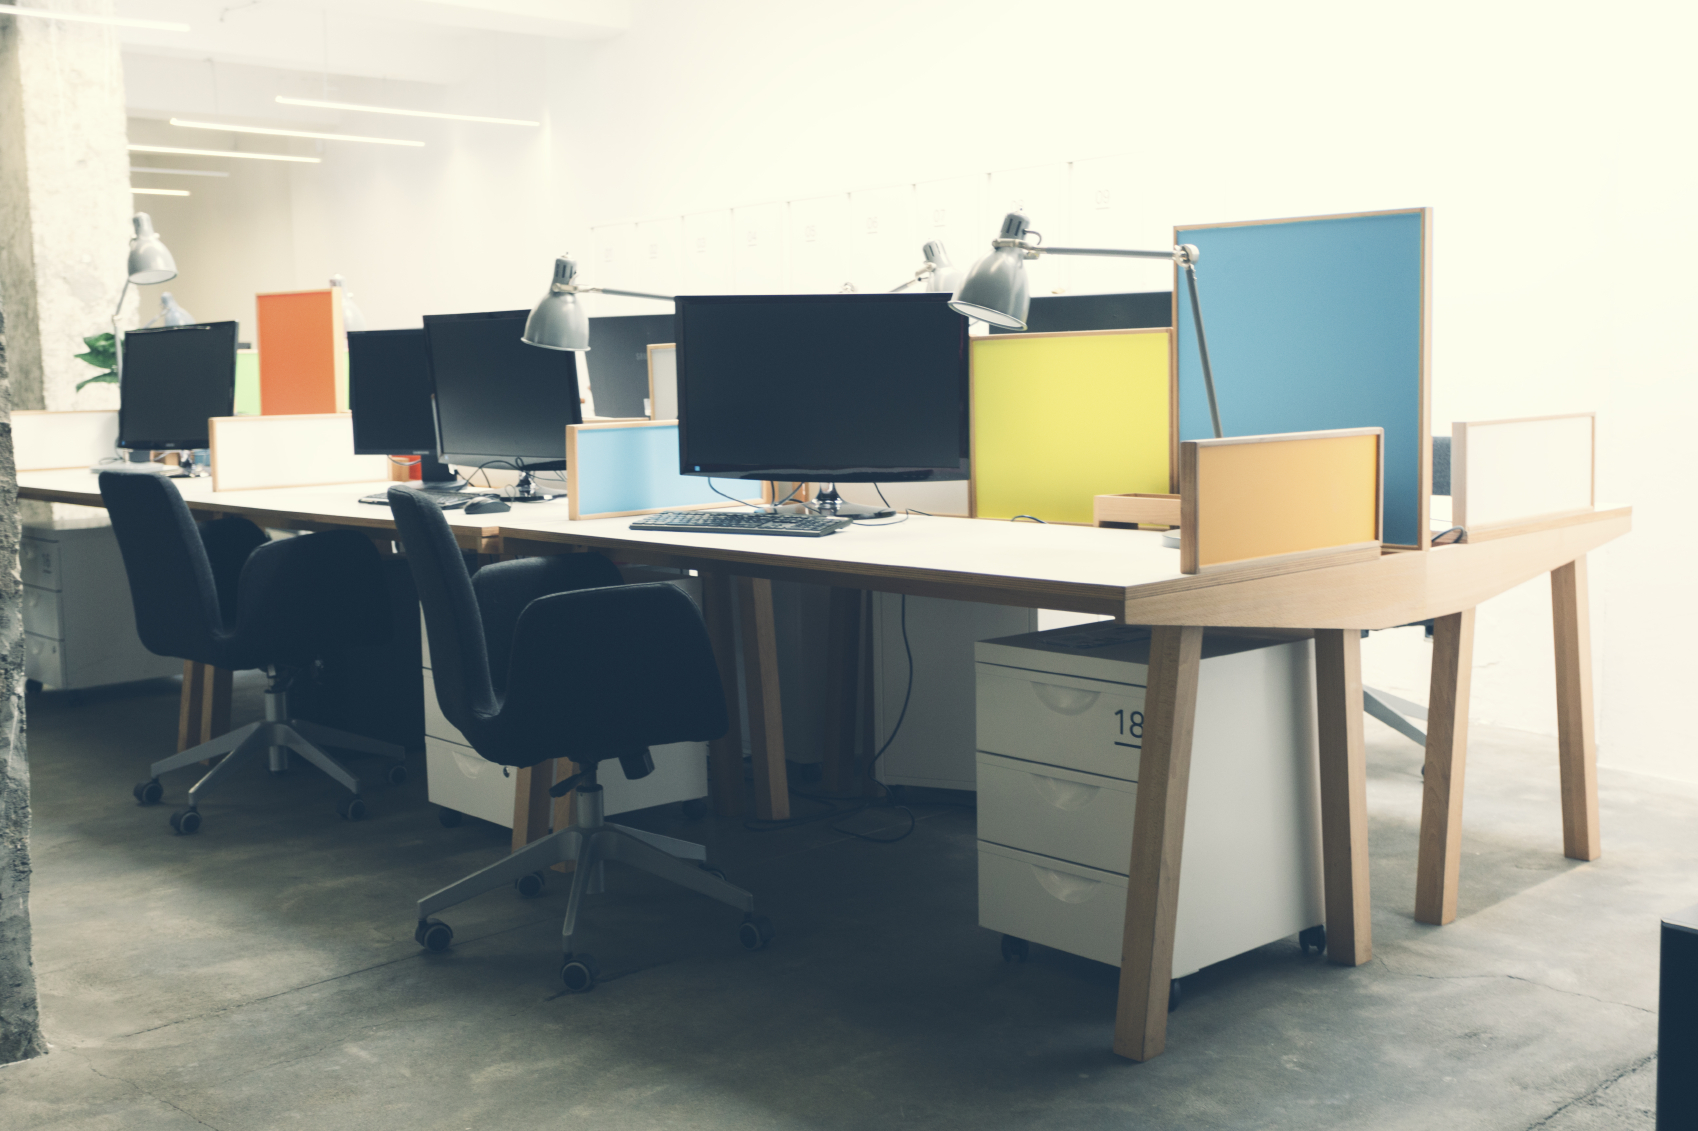 How office design affects employee enagement wellbeing for Office design and productivity